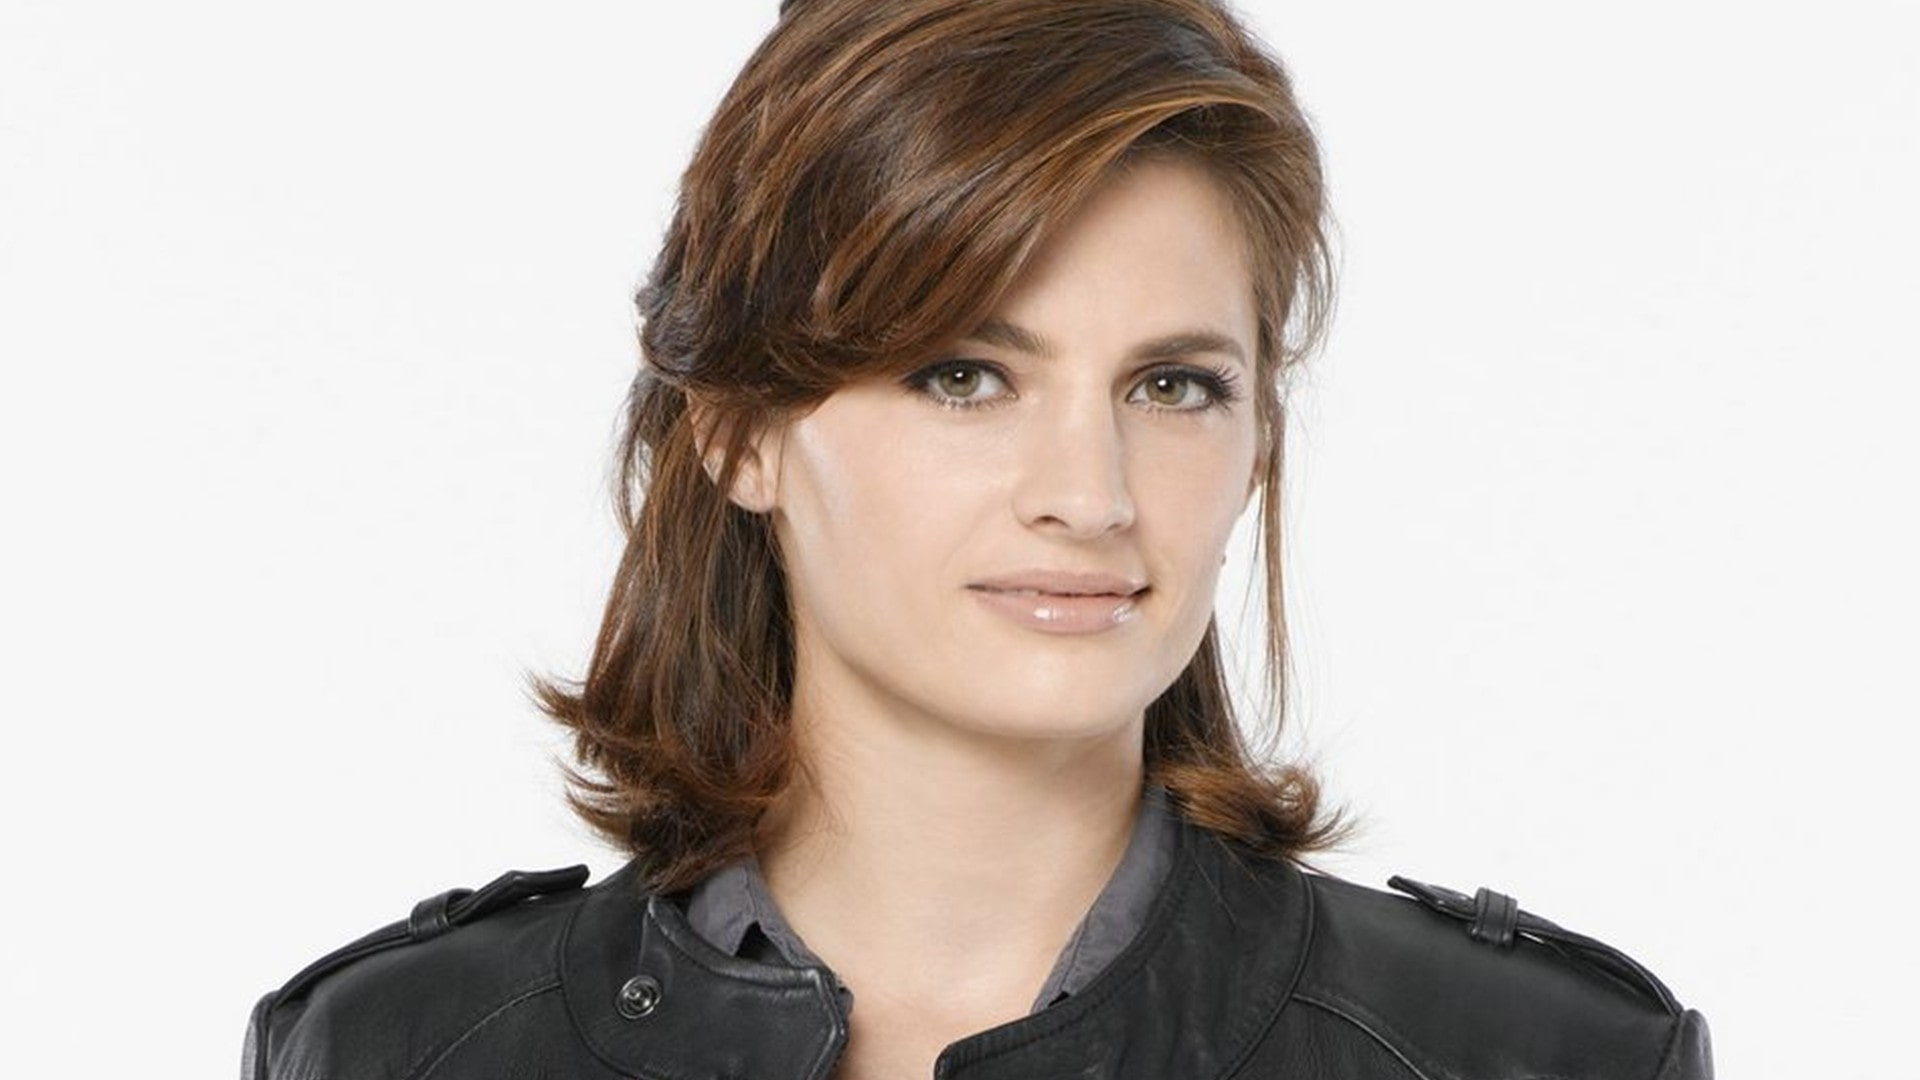 Stana Katic Full hd wallpapers